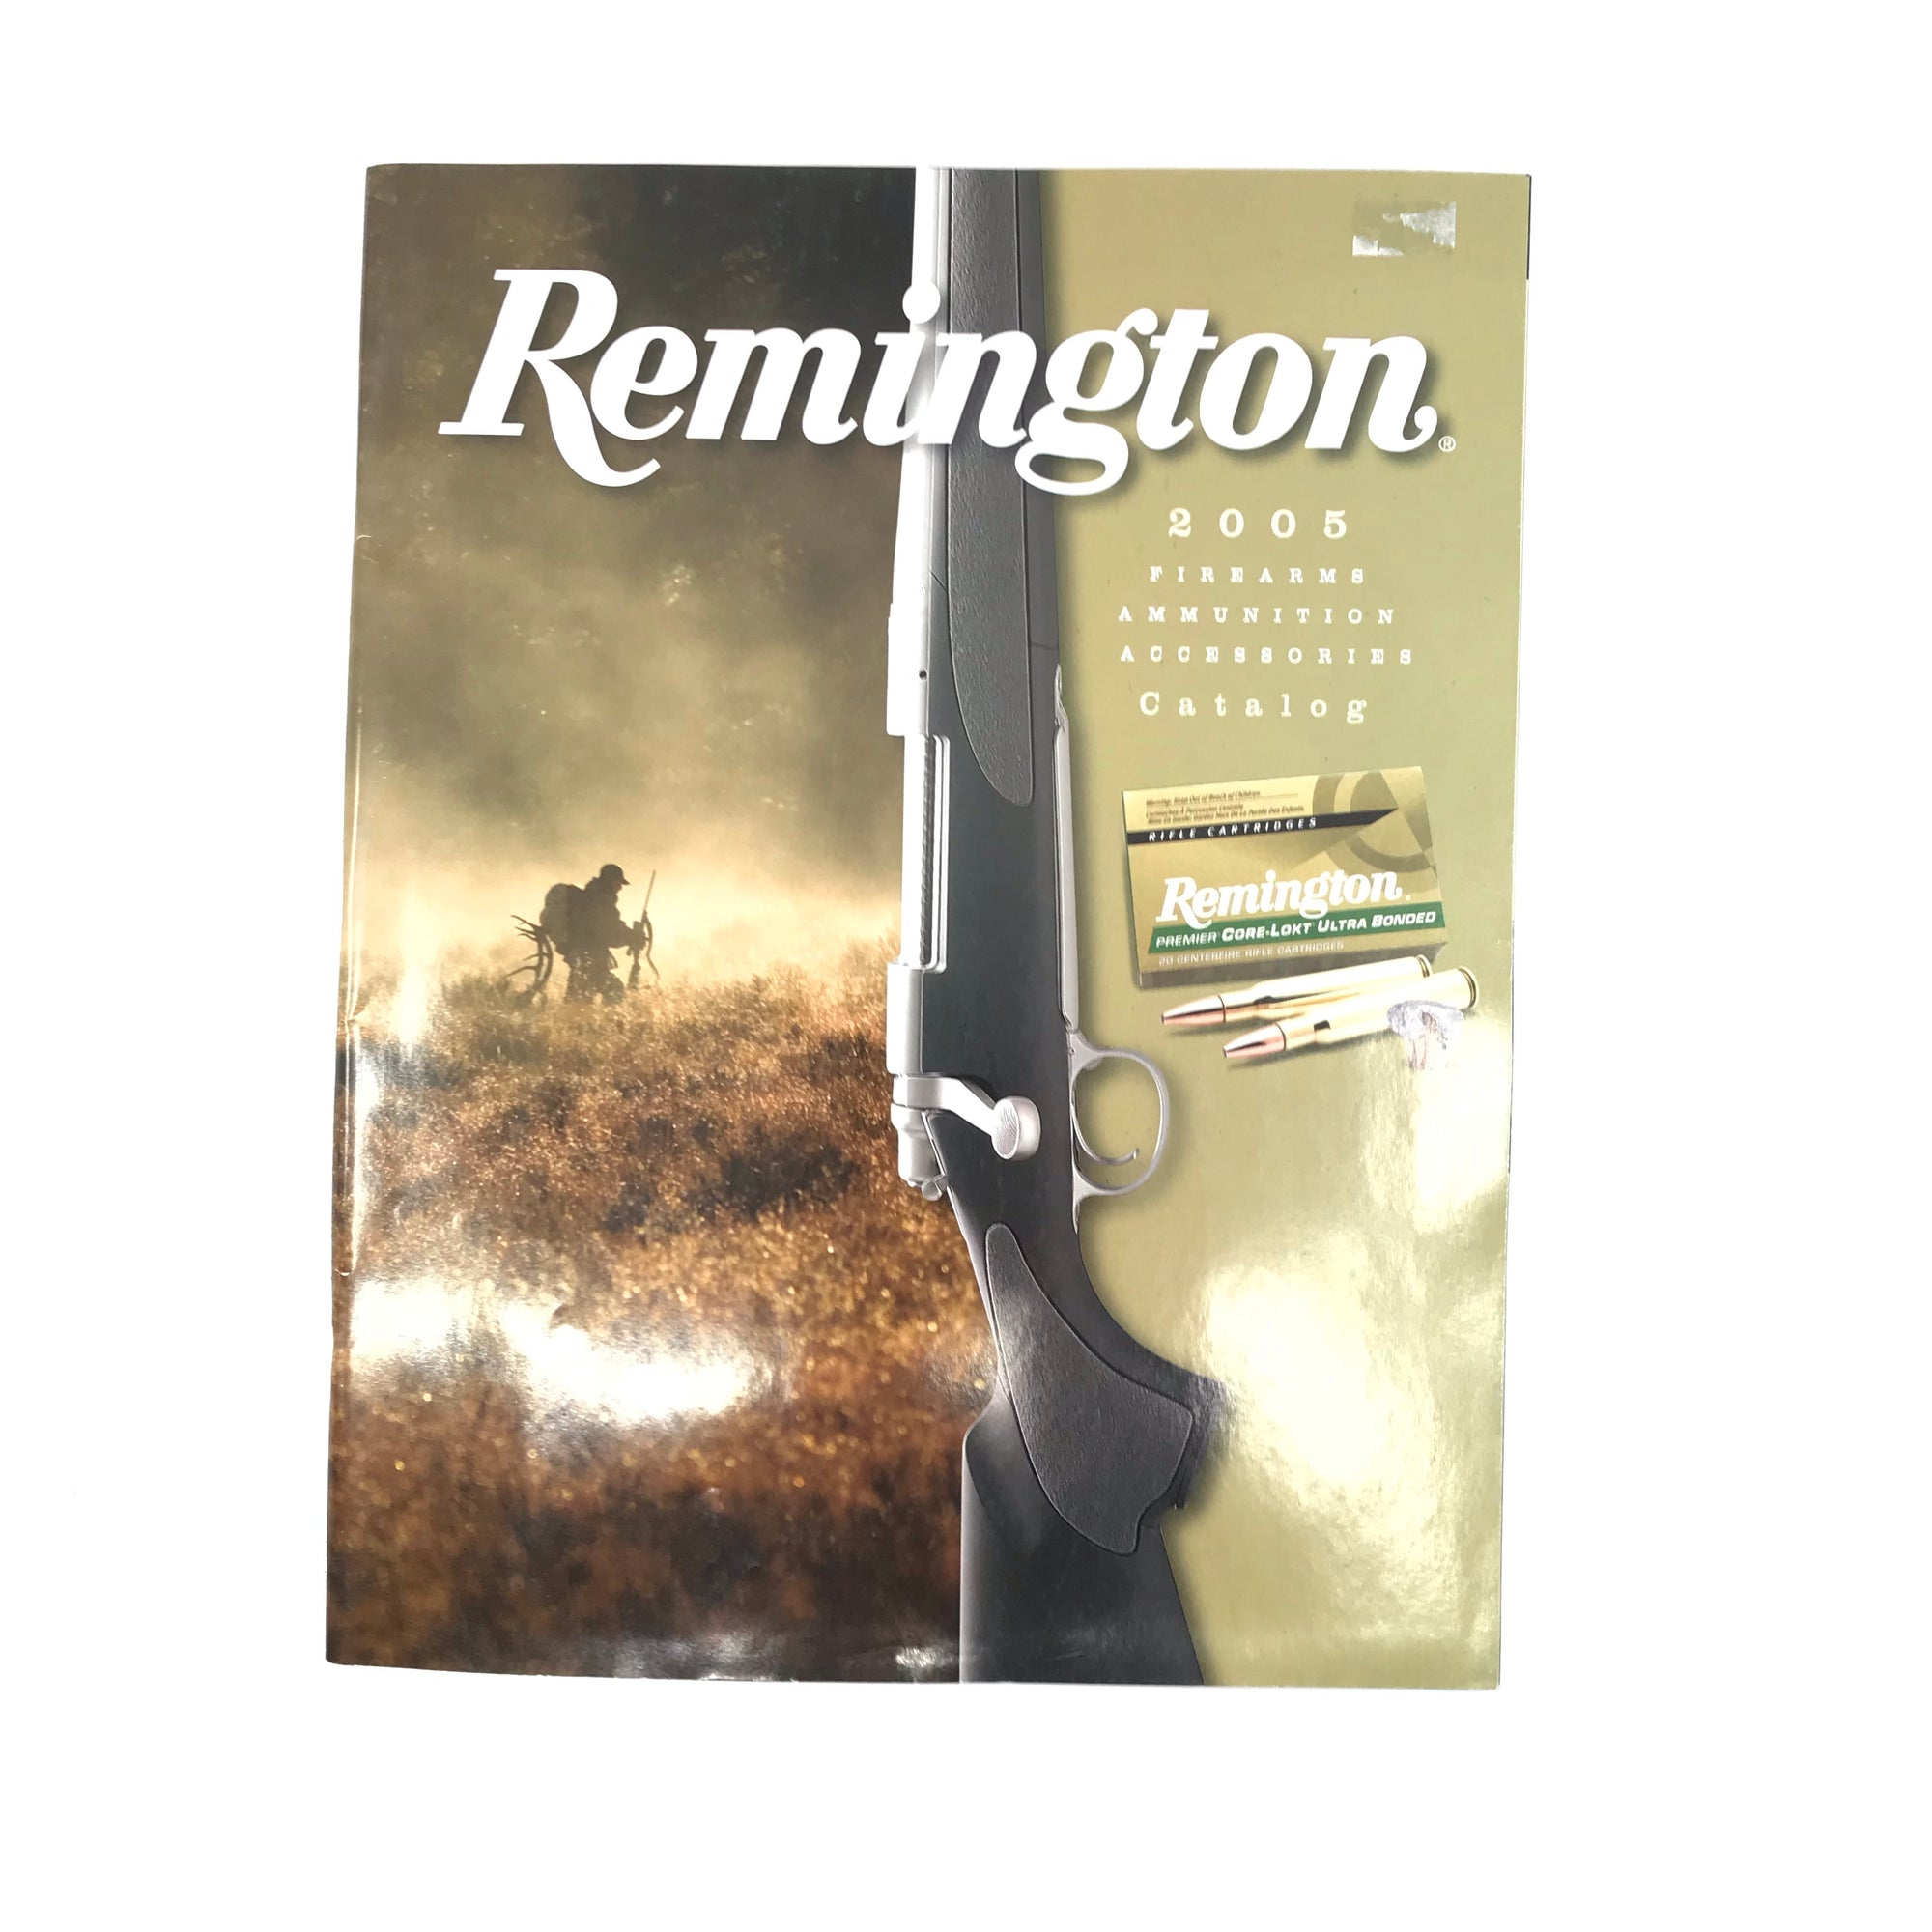 2005 Remington Firearms Ammunition Accessories Catalogue